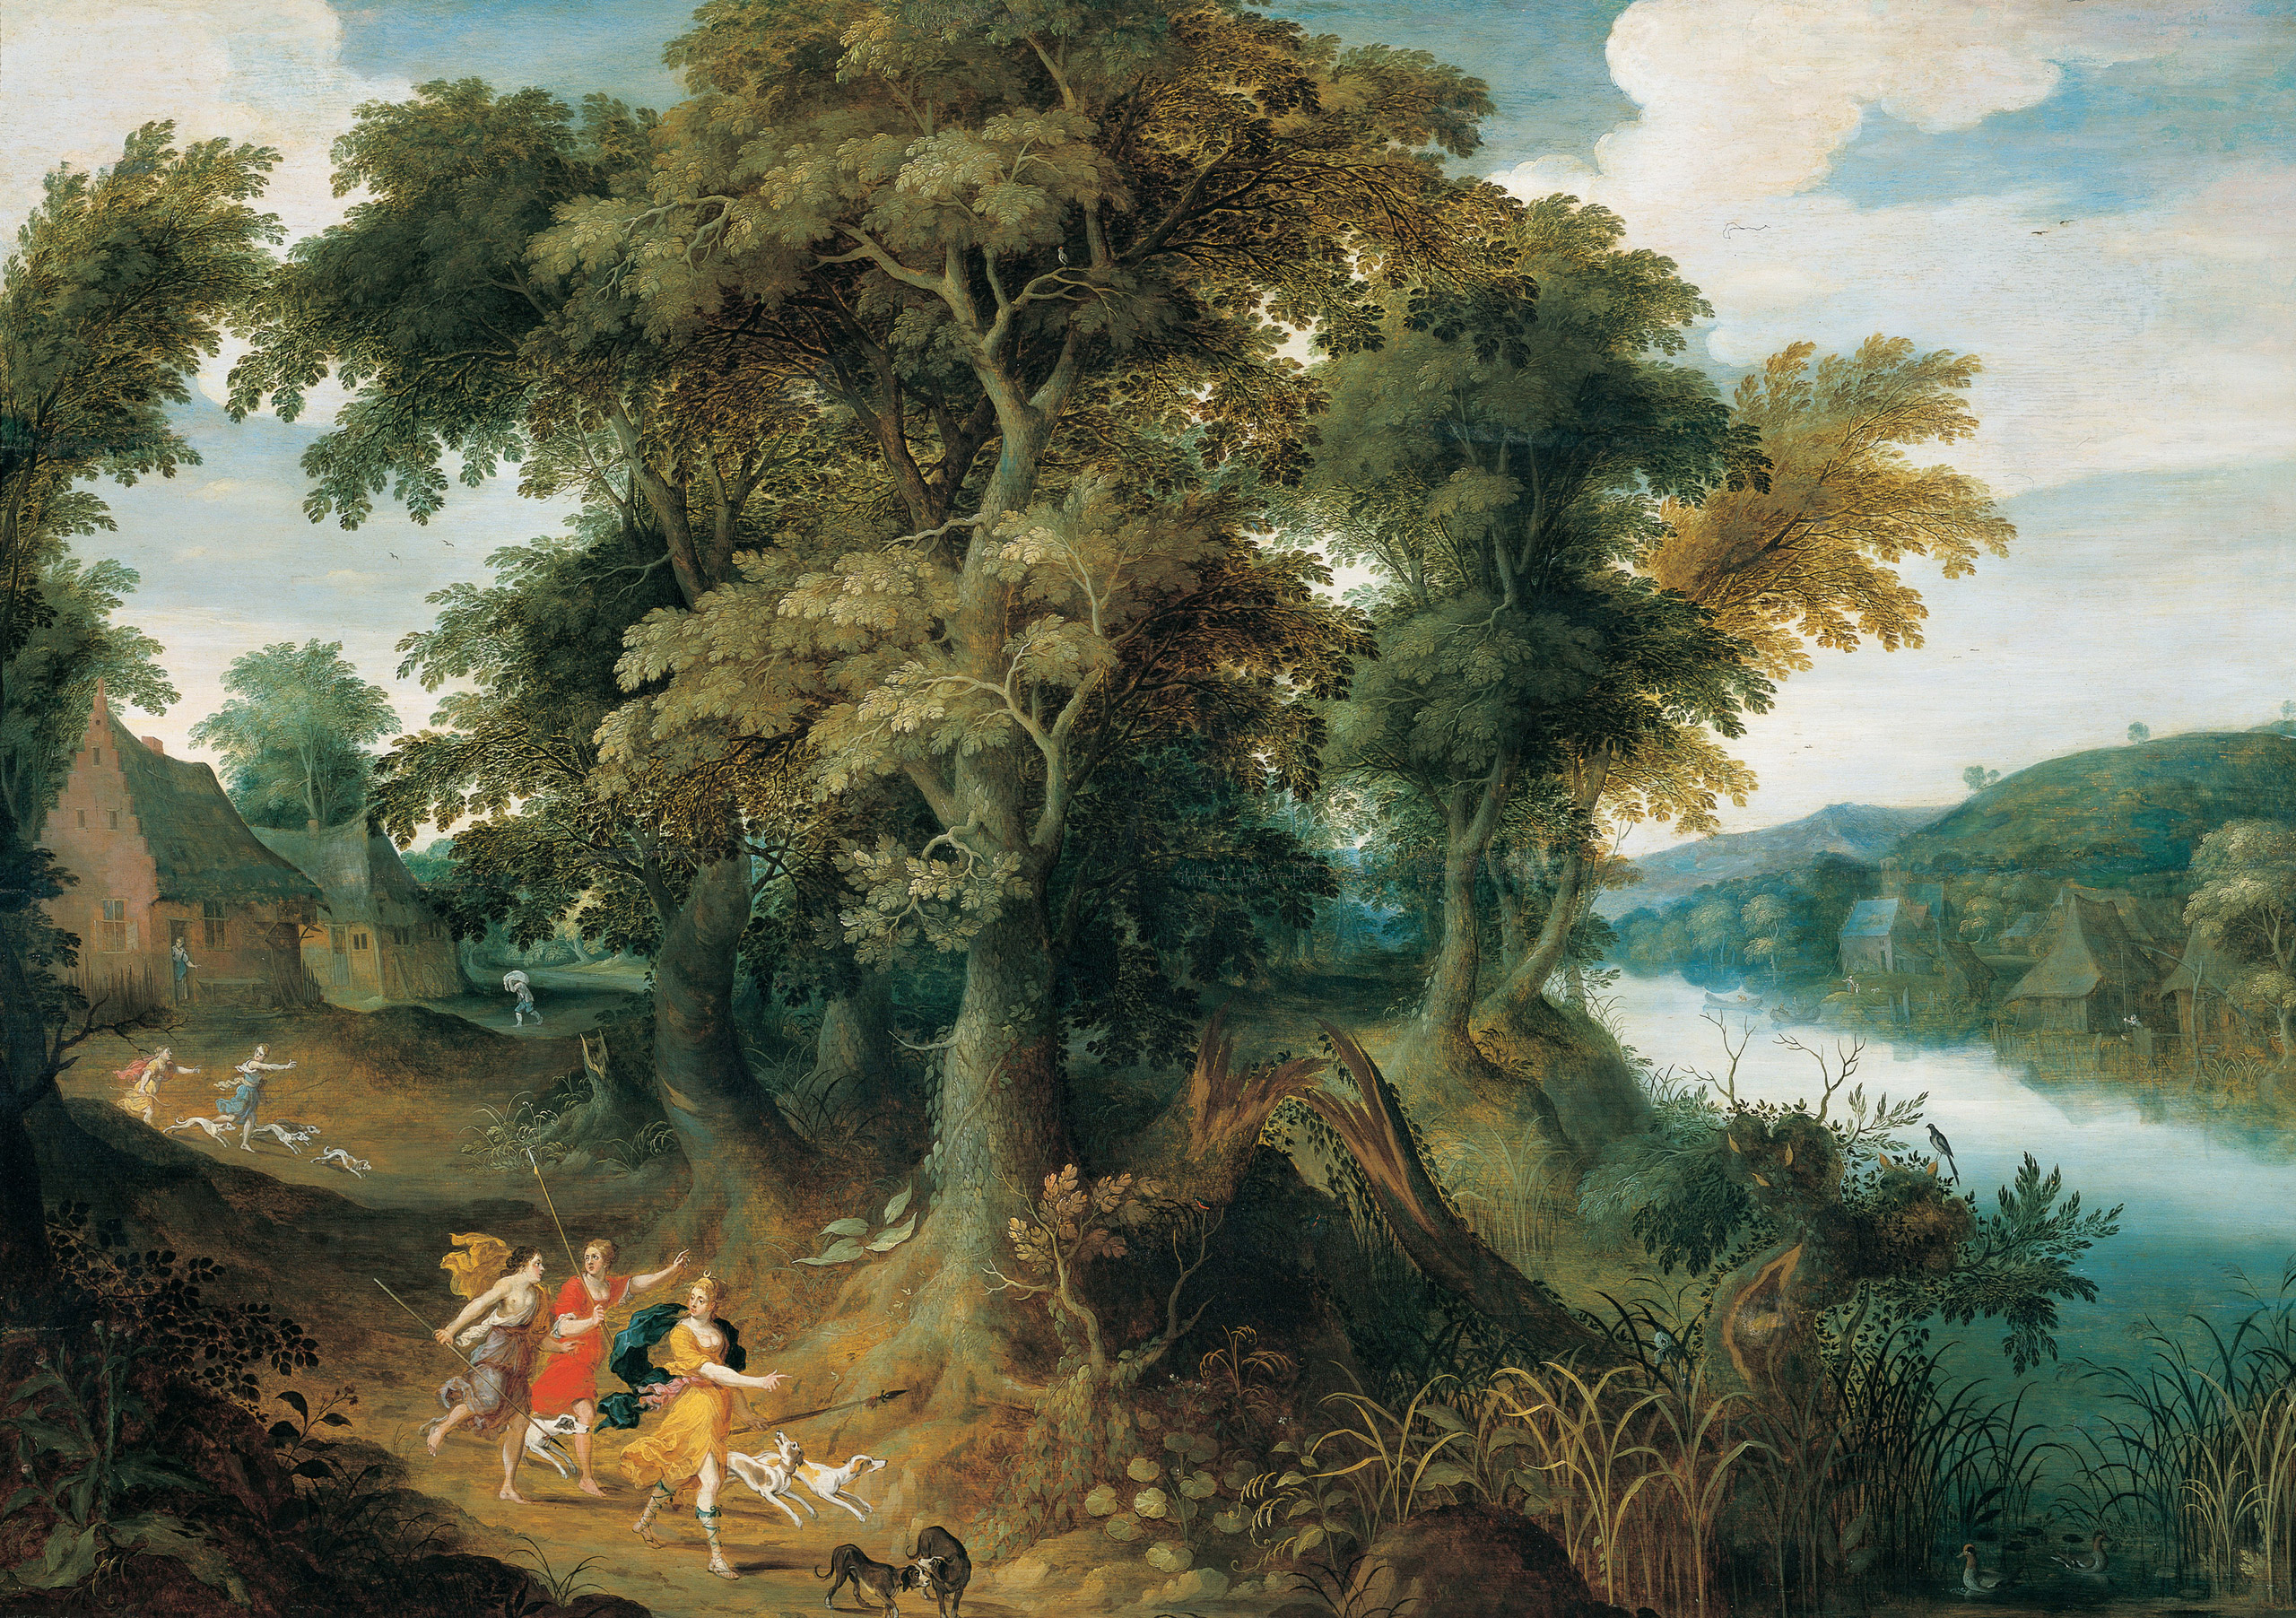 Fig. 2 Jasper van der Lanen (c. 1585-after 1634), <em>Diana and her Nymphs</em>, oil on canvas, 83 x 118 cm. Buenos Aires, Museo Nacional de Bellas Artes